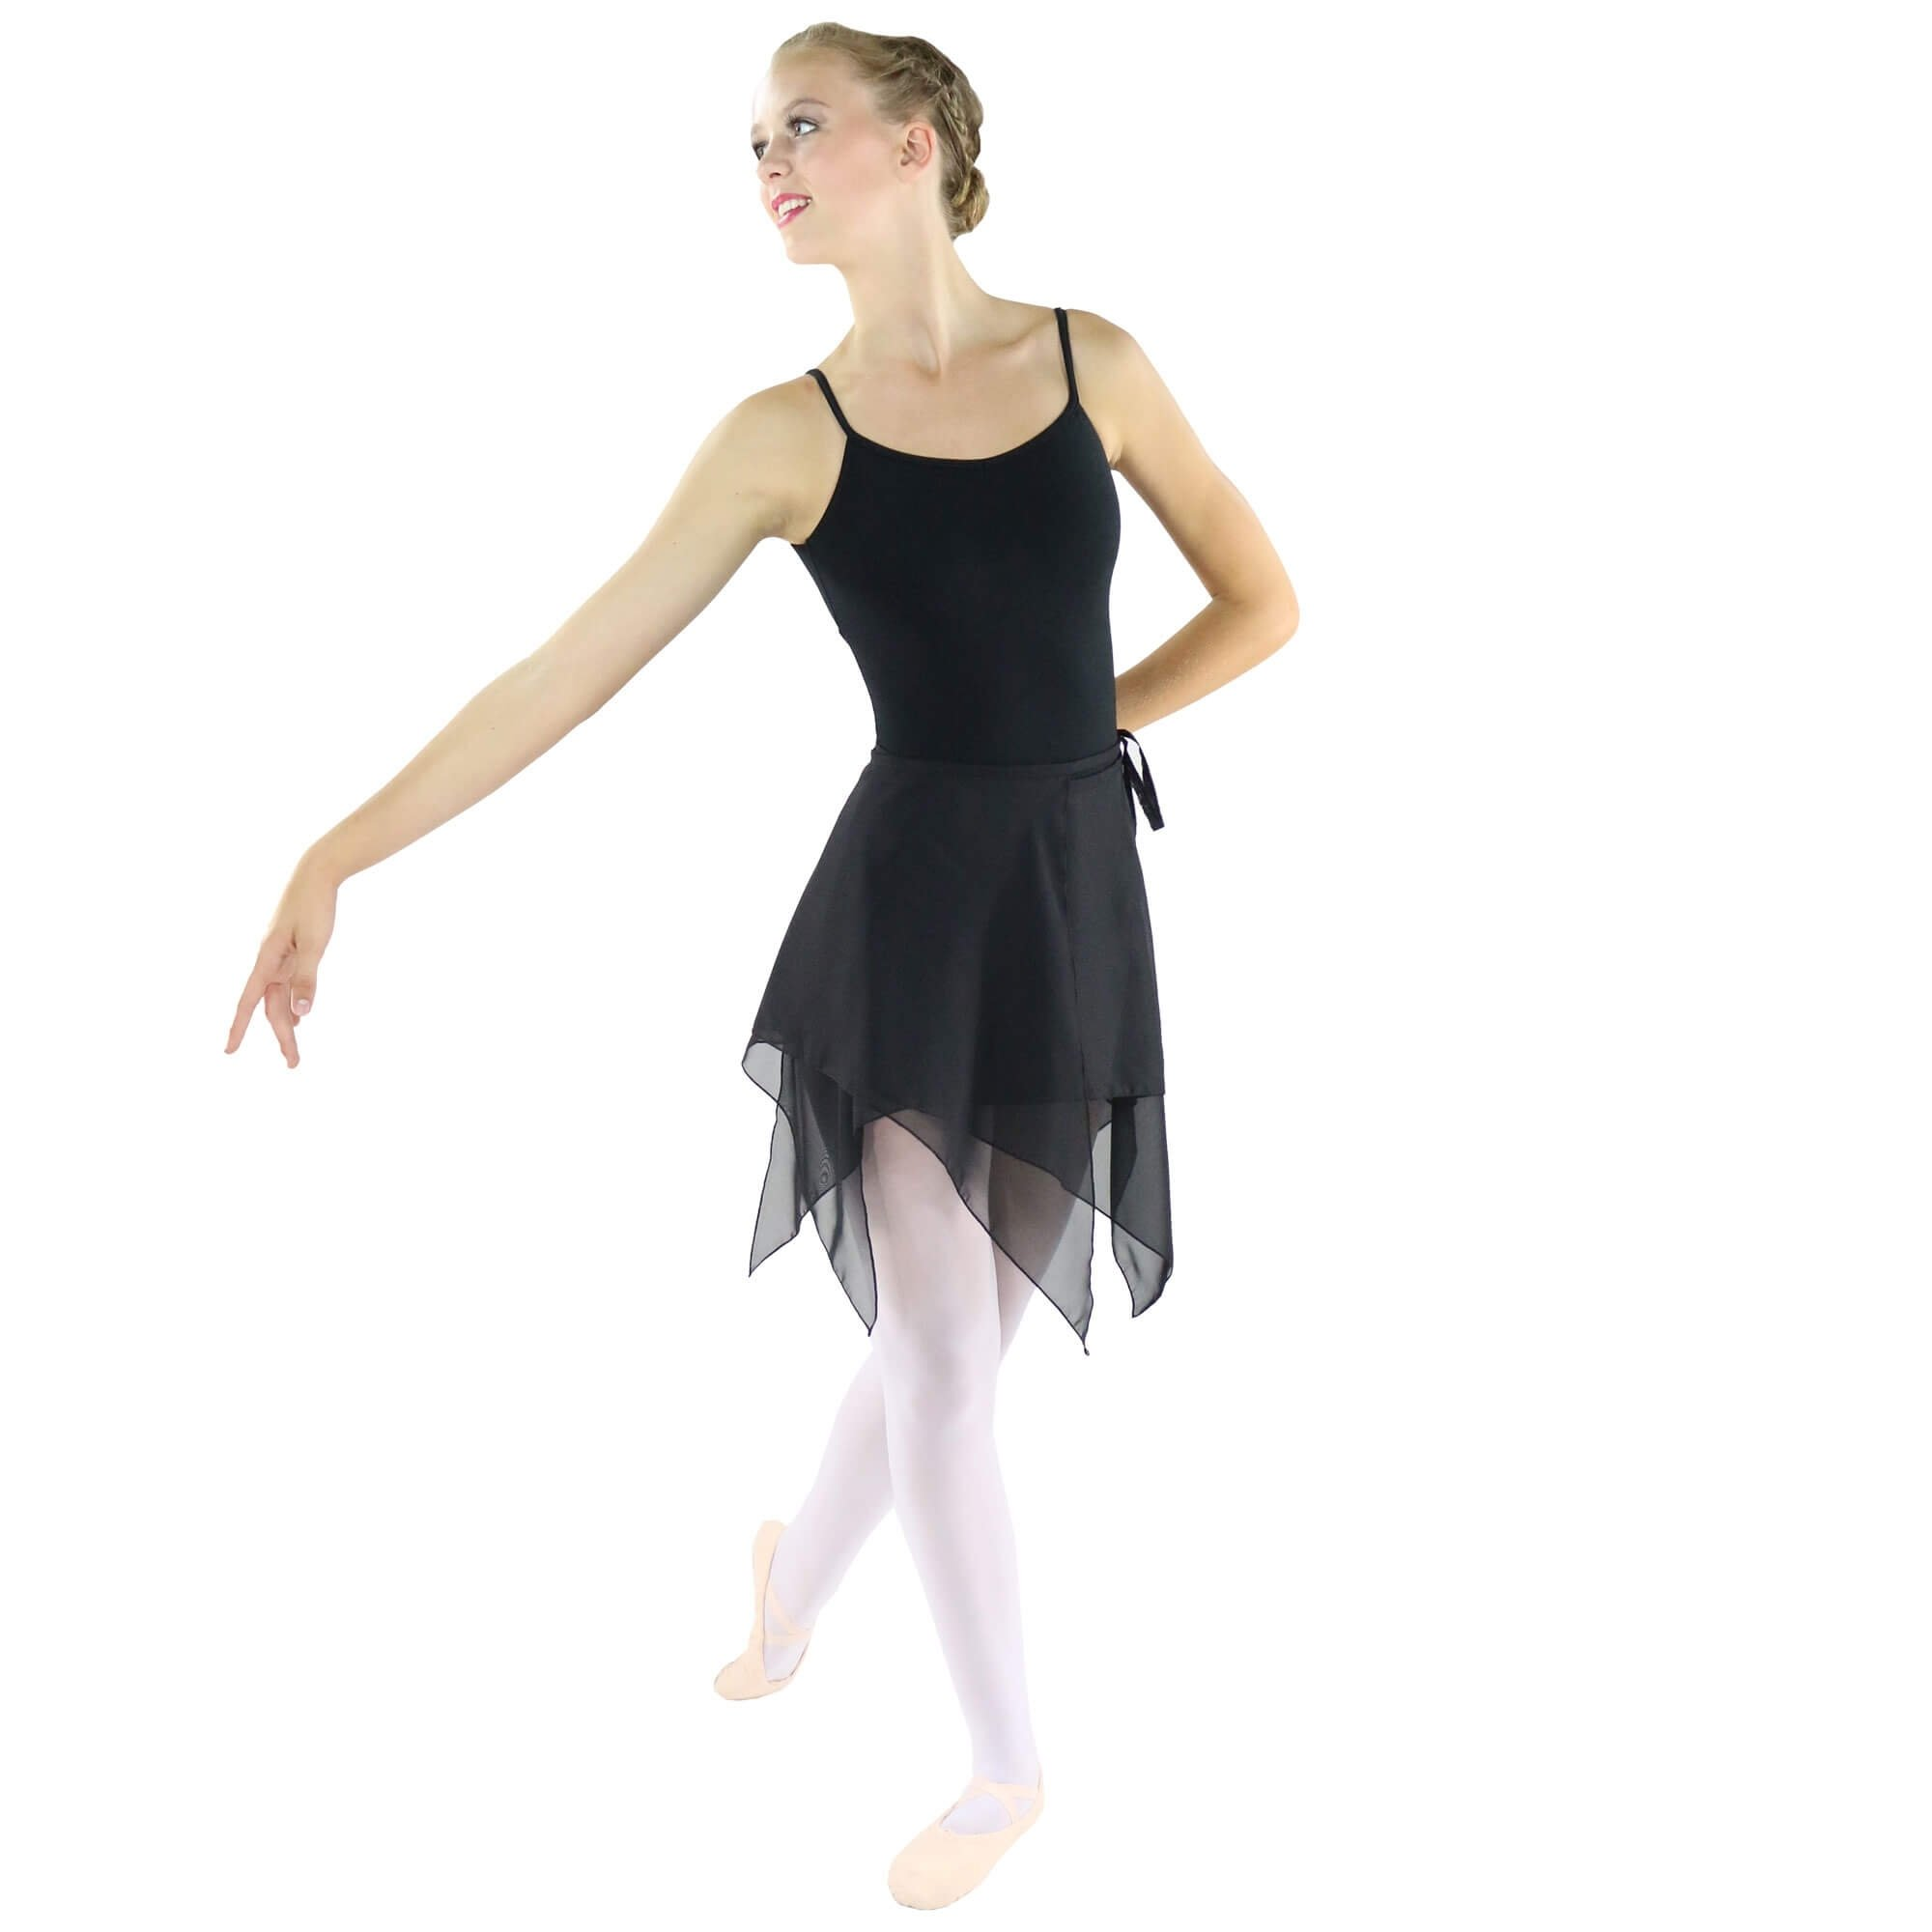 Danzcue Adult Asymmetric Ballet Dance Wrap Skirt